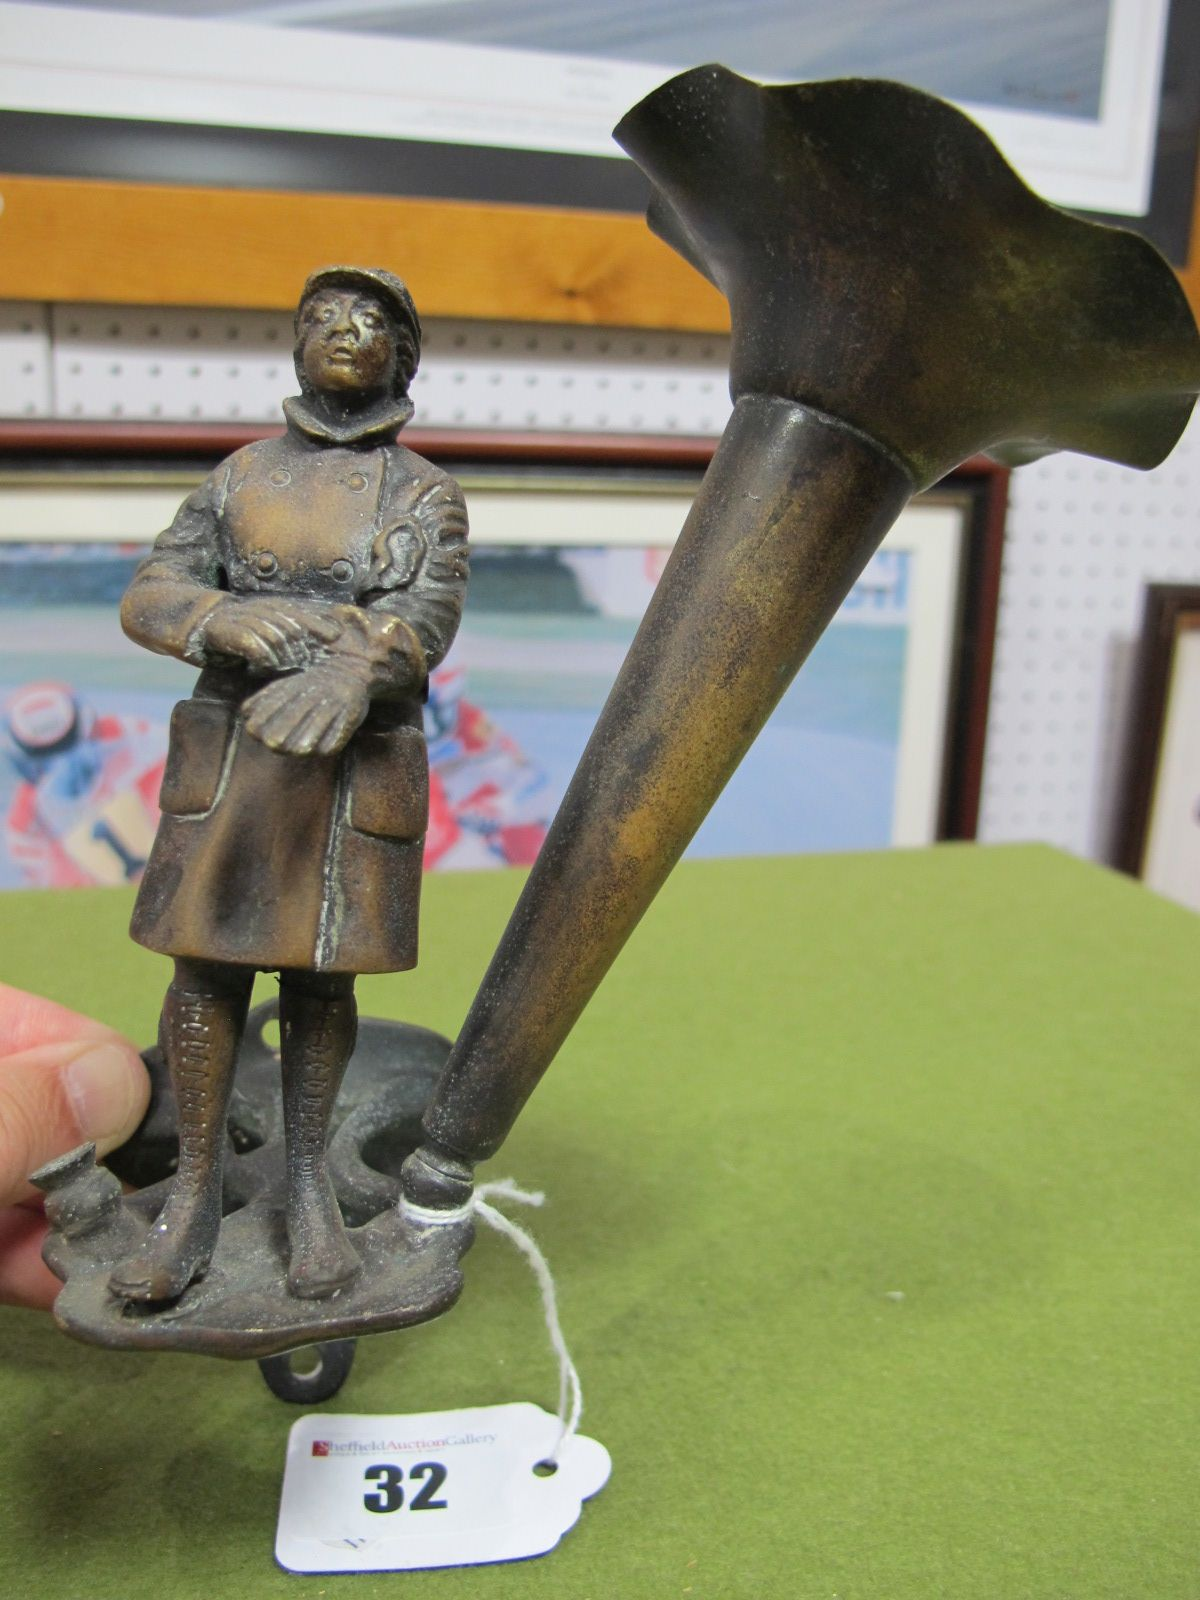 Lot 32 - An Edwardian Wall Mounted Twin Posy Holder, brass, with figure of early motorist figure, missing one